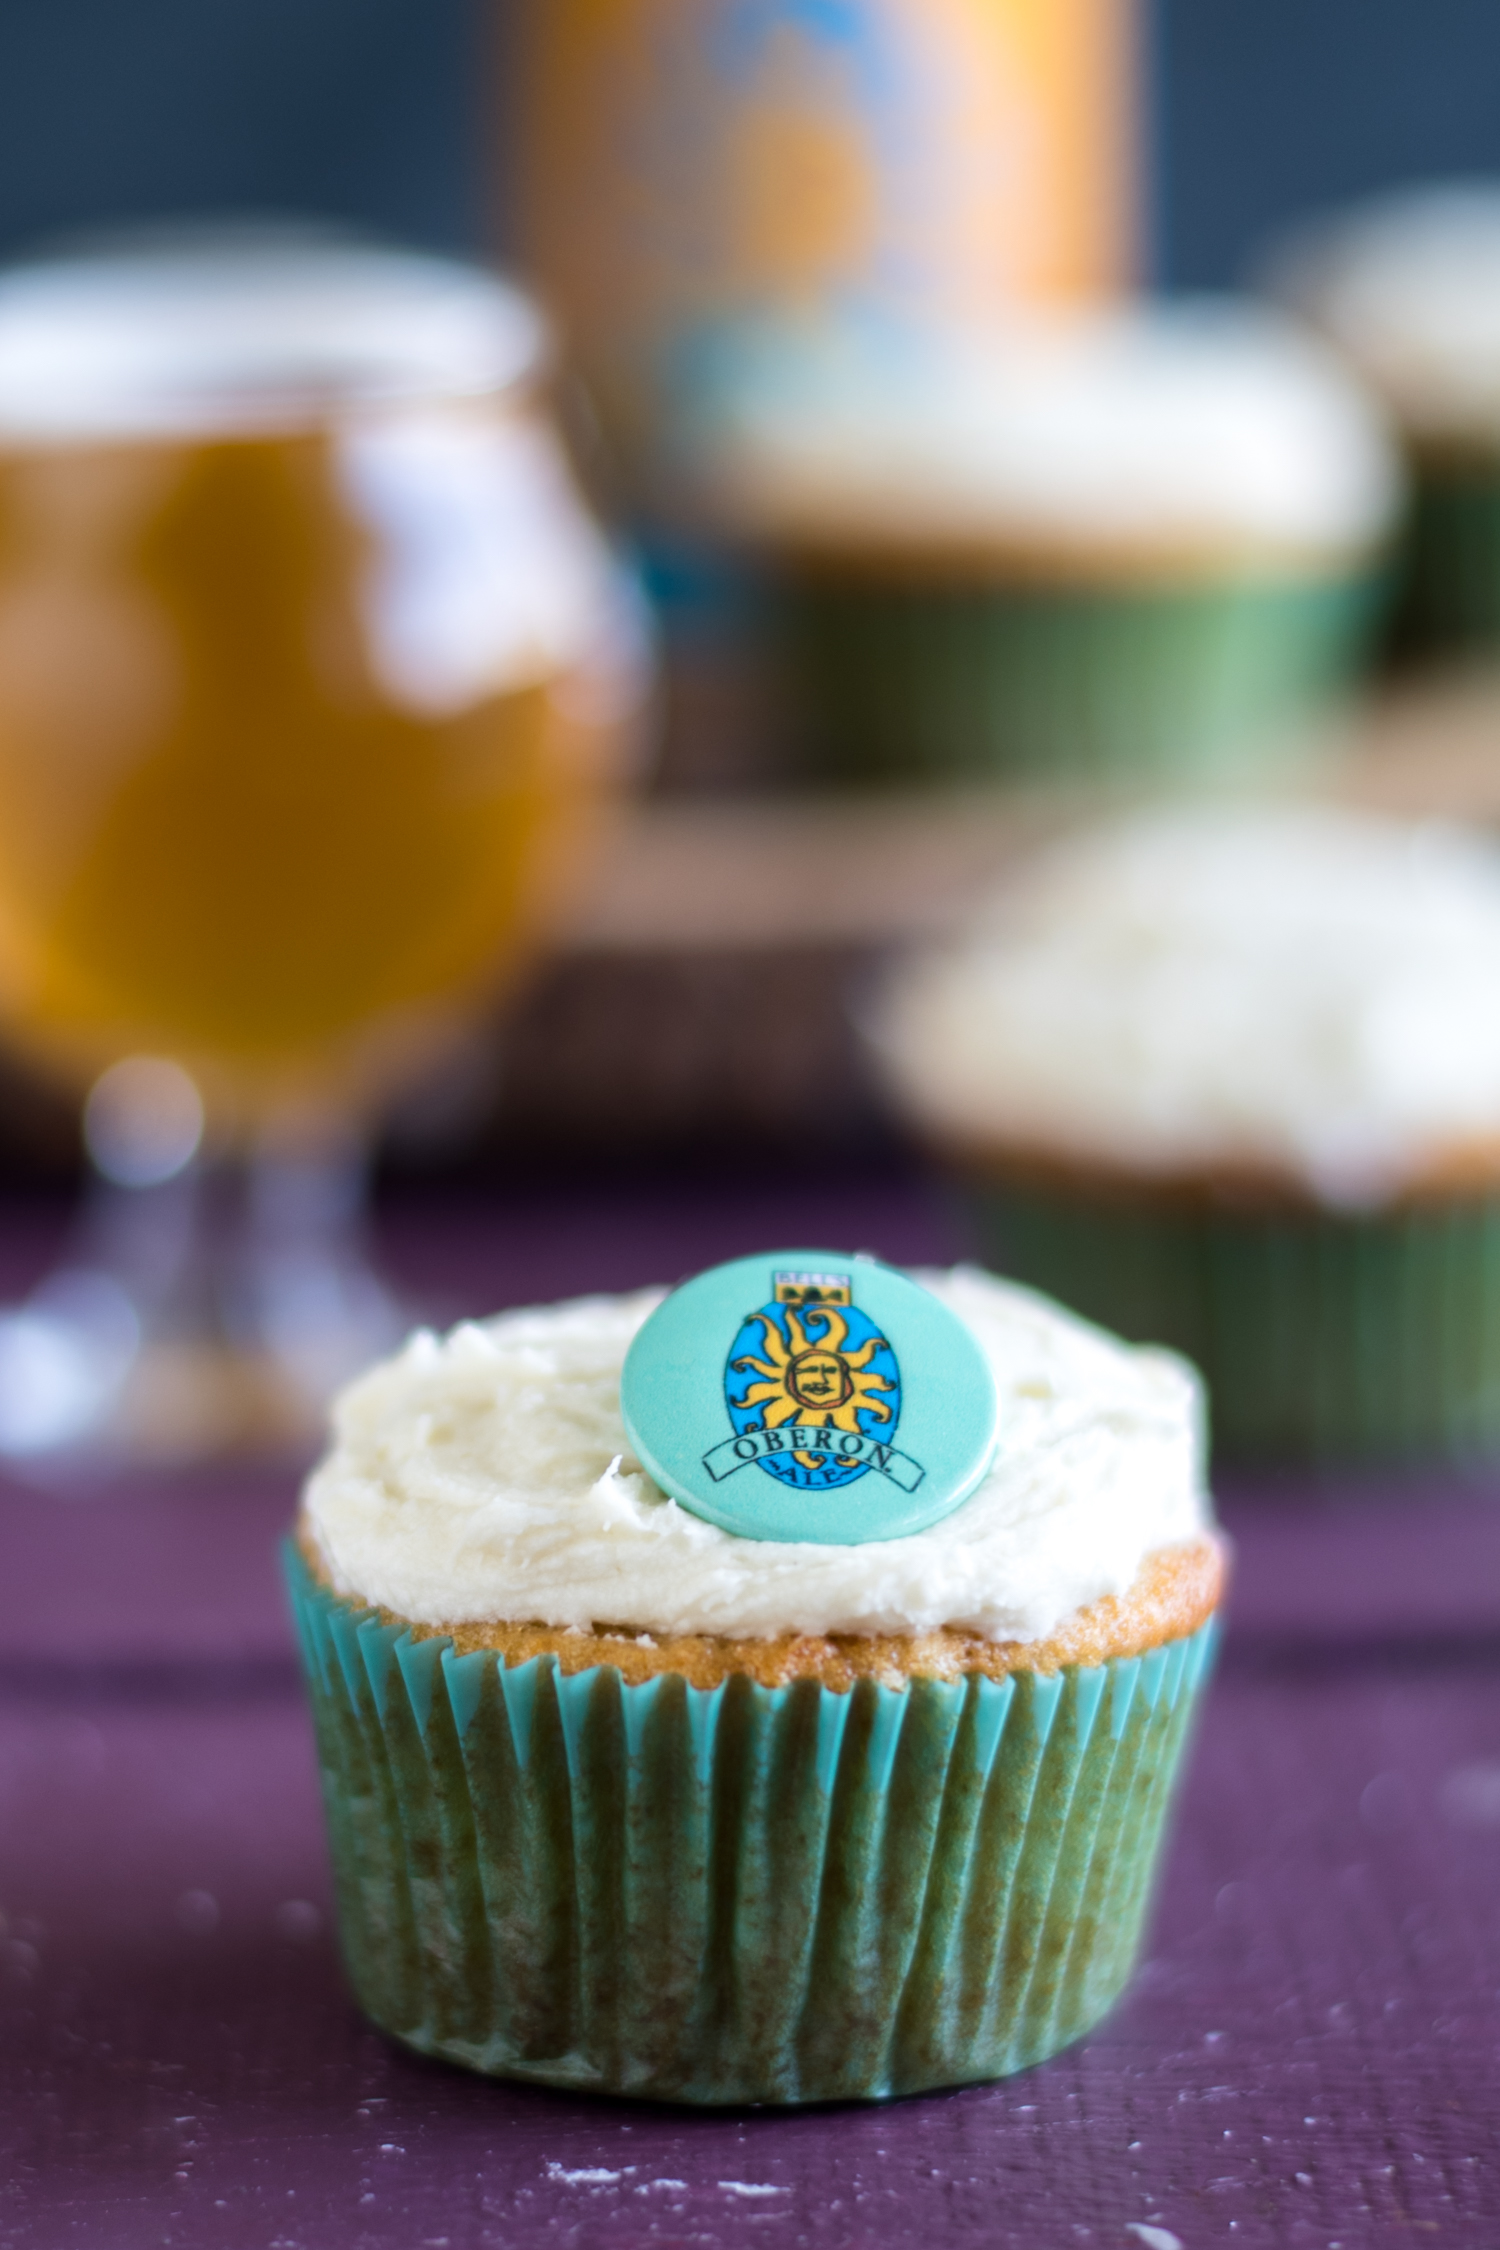 Oberon Orange Cupcakes are the perfect cupcake for spring! The cupcake is bursting with bright orange flavor. #dessert #cupcake #orange #beer #Easter #spring #vegan #dairyfree